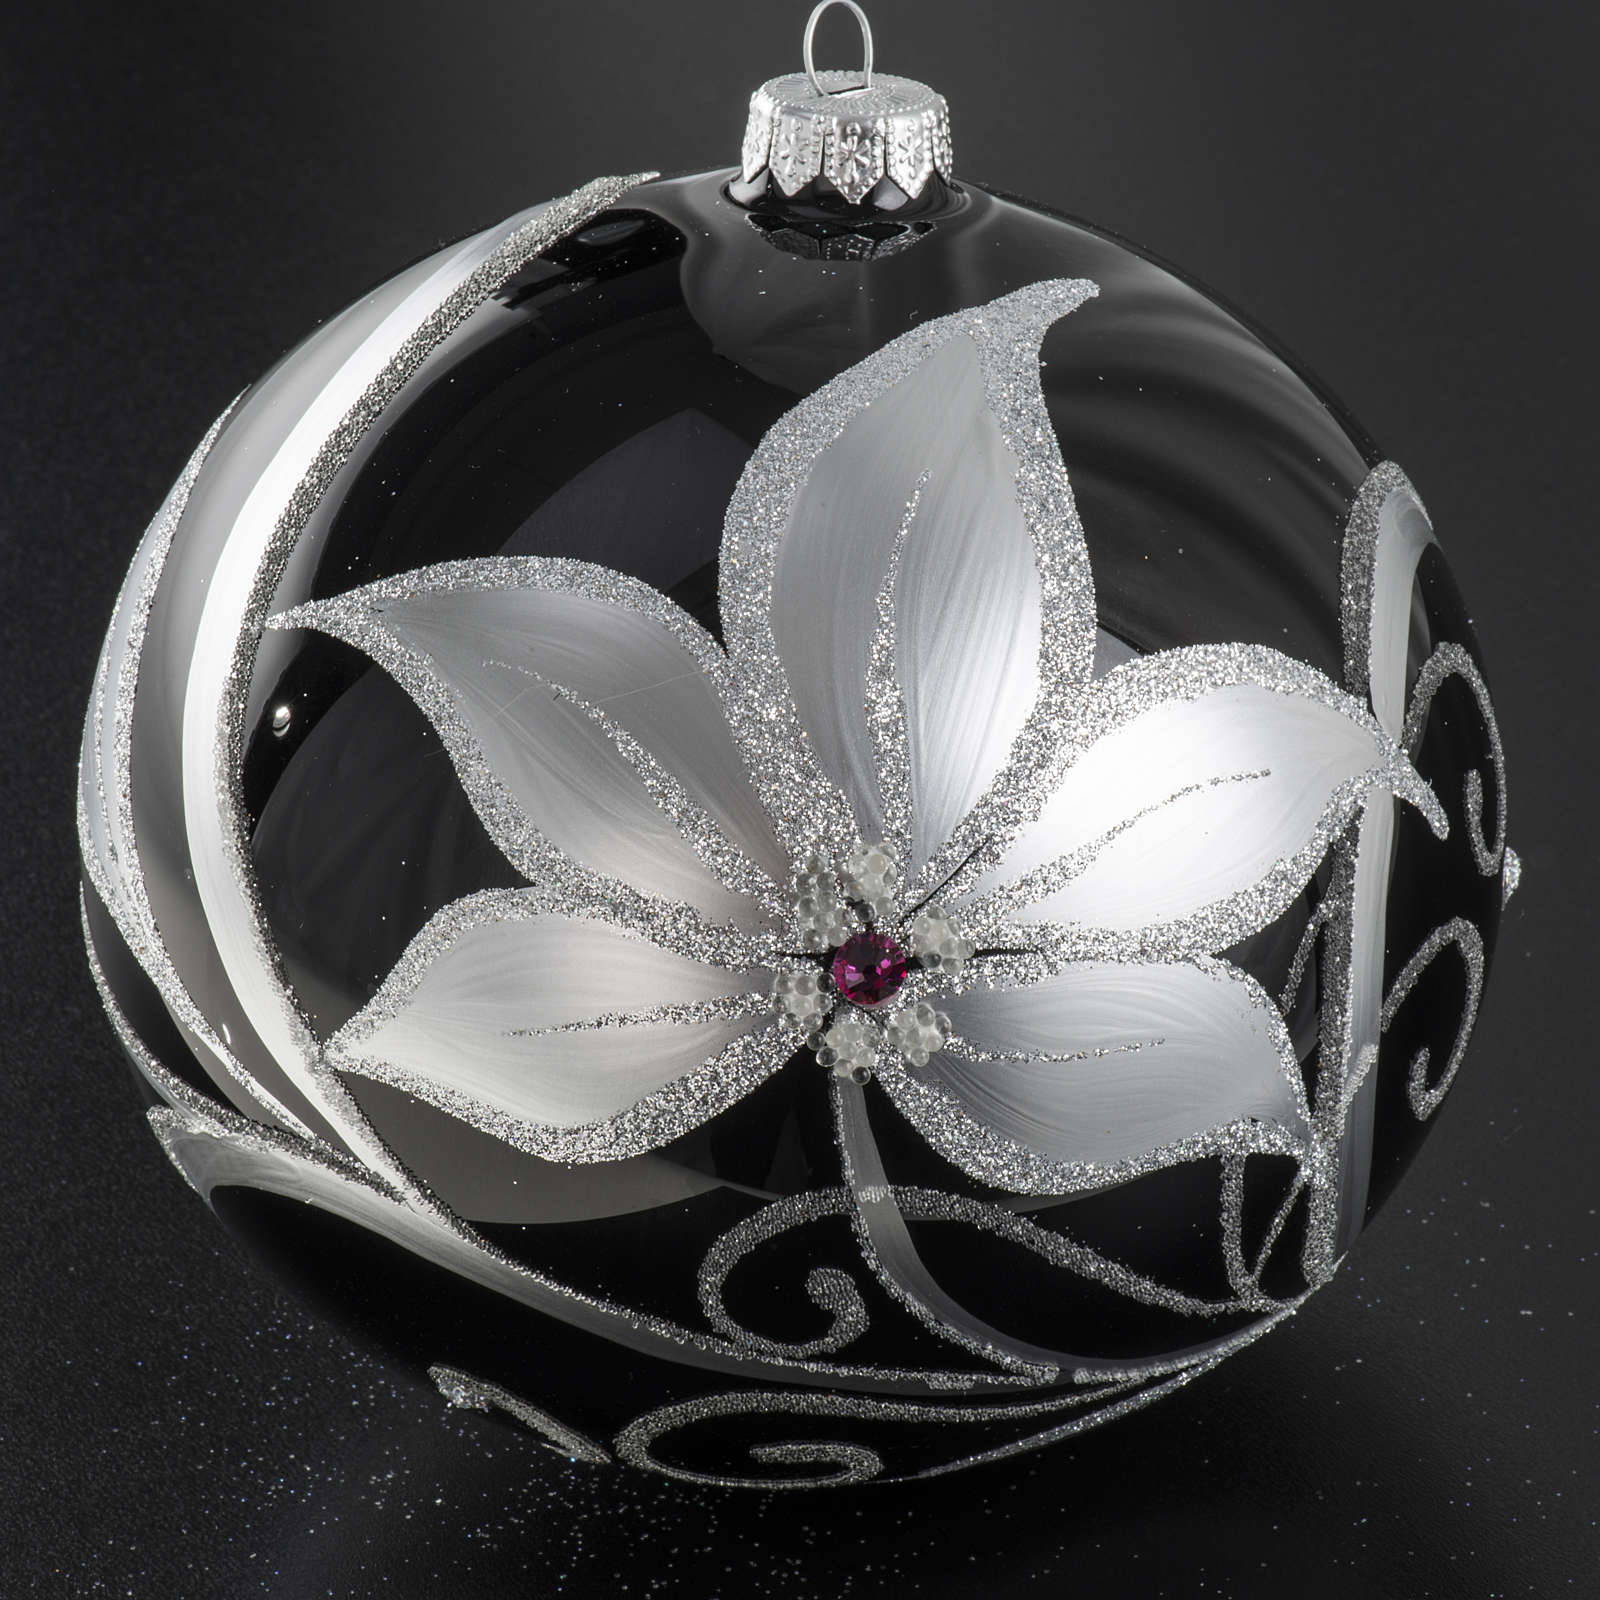 Christmas tree baubles glass black silver flowers, 15cm 4